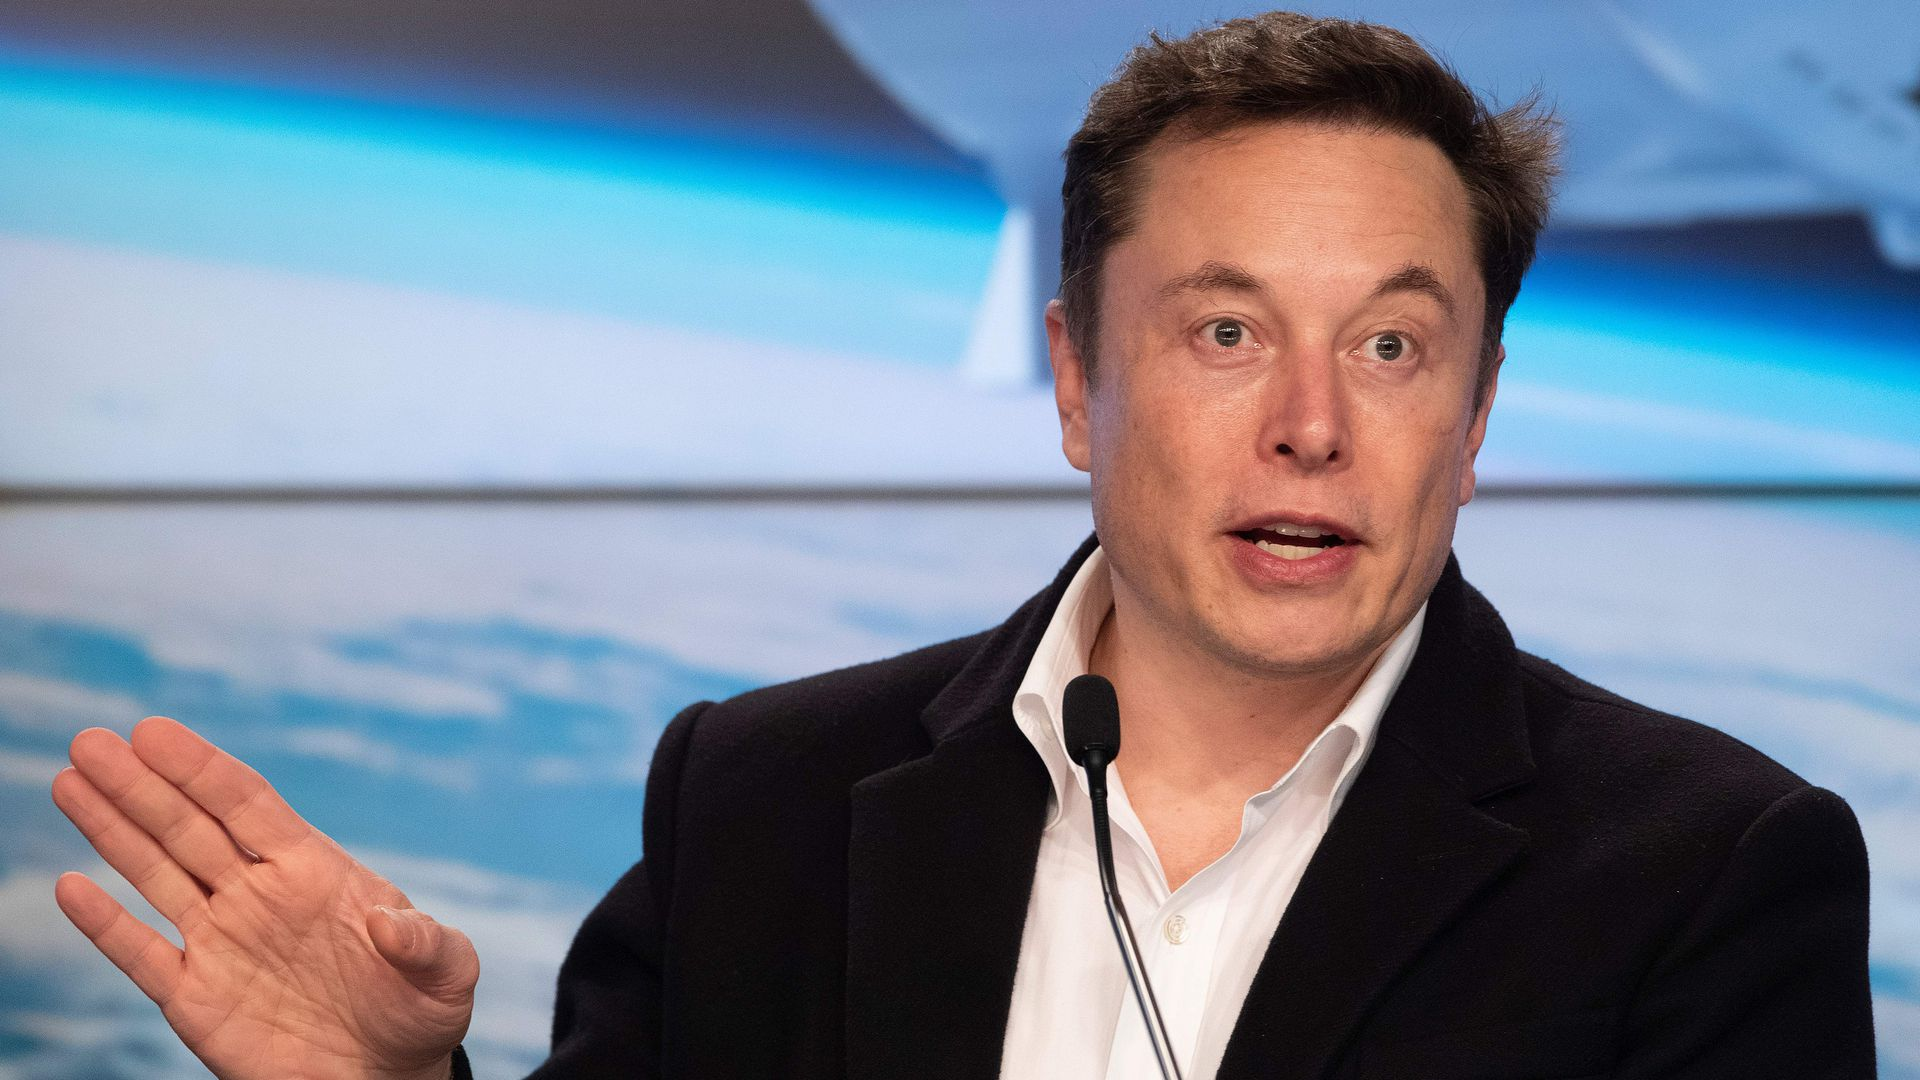 The SEC says Elon Musk brazenly disregarded a federal judge's order.